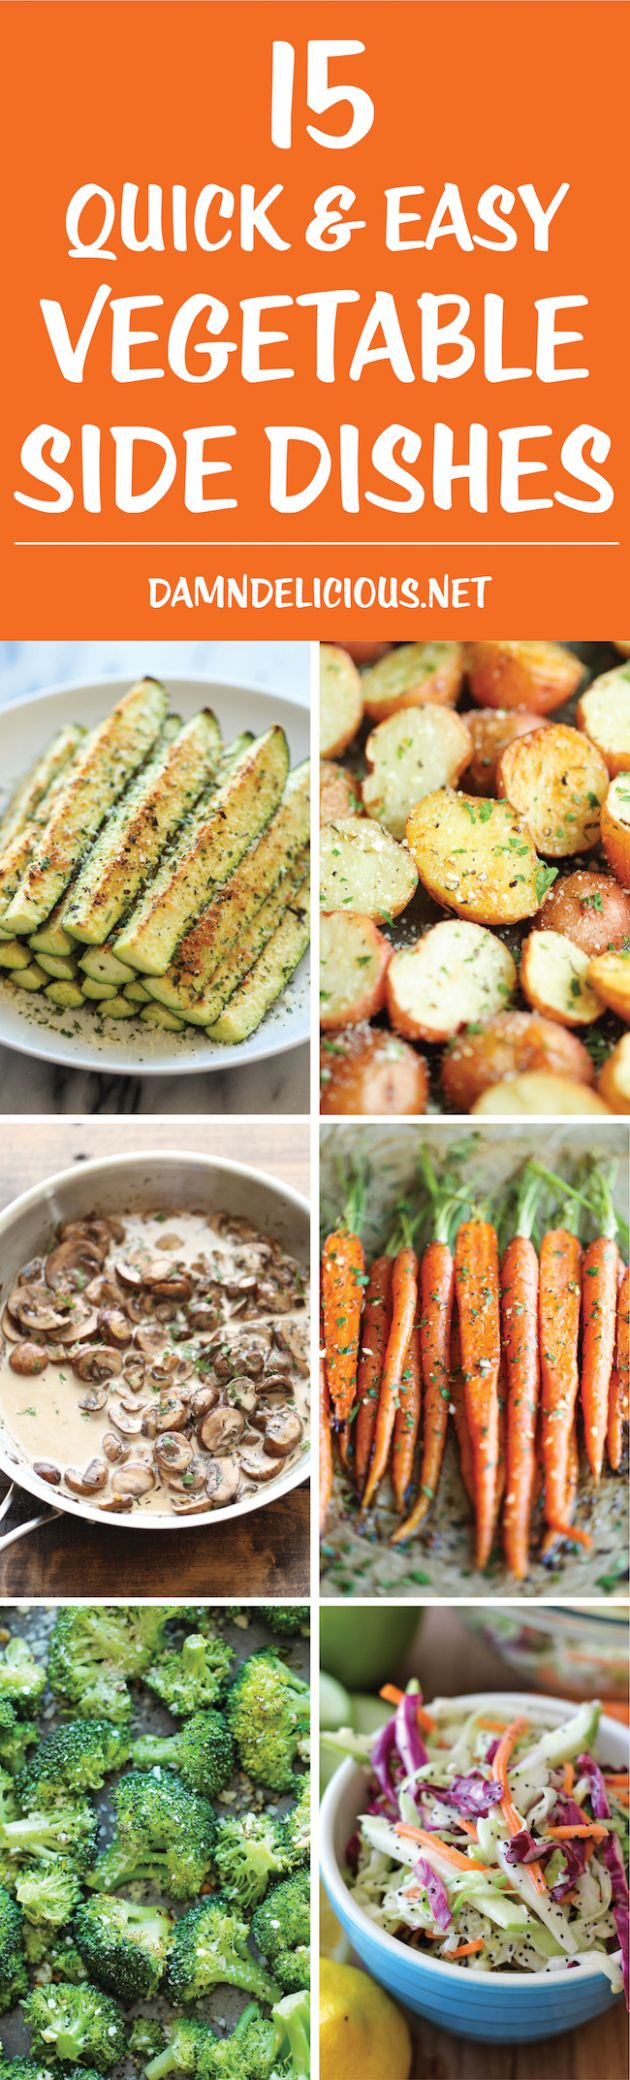 8 Quick and Easy Vegetable Side Dishes - Damn Delicious - Vegetable Recipes Quick